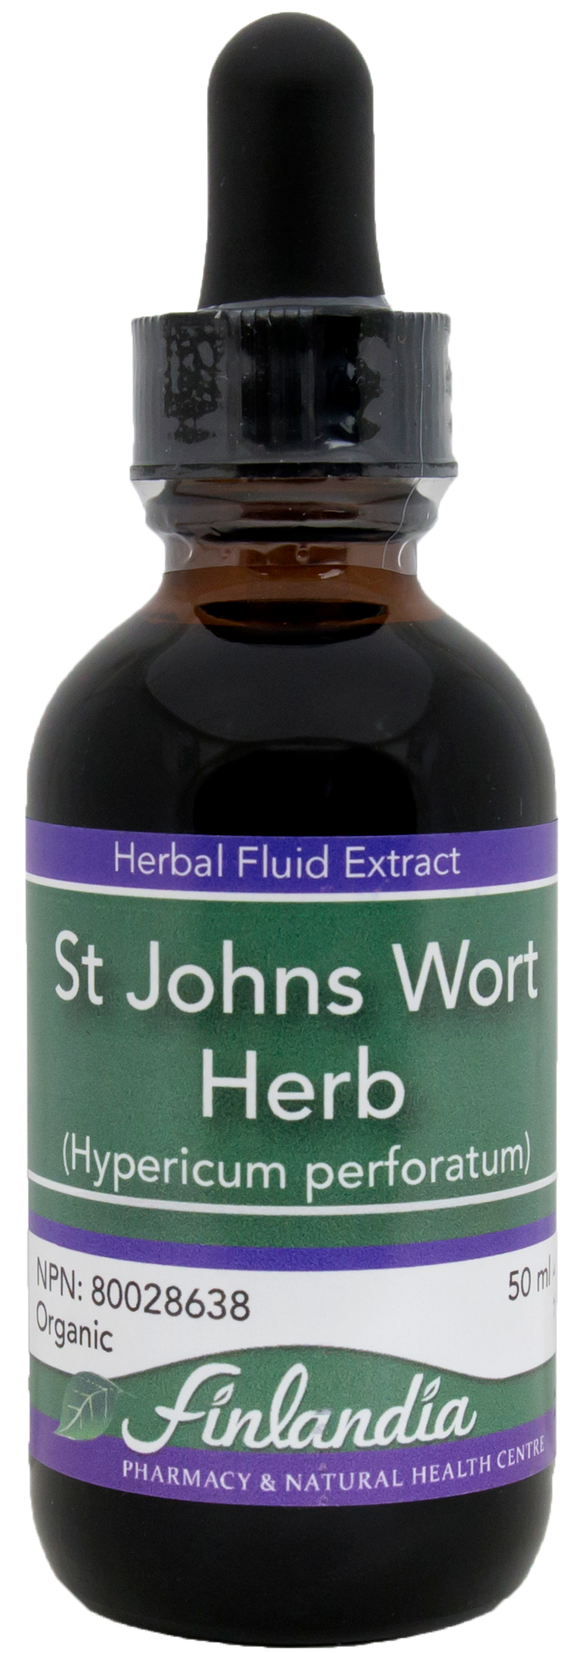 St Johns wort herb tincture